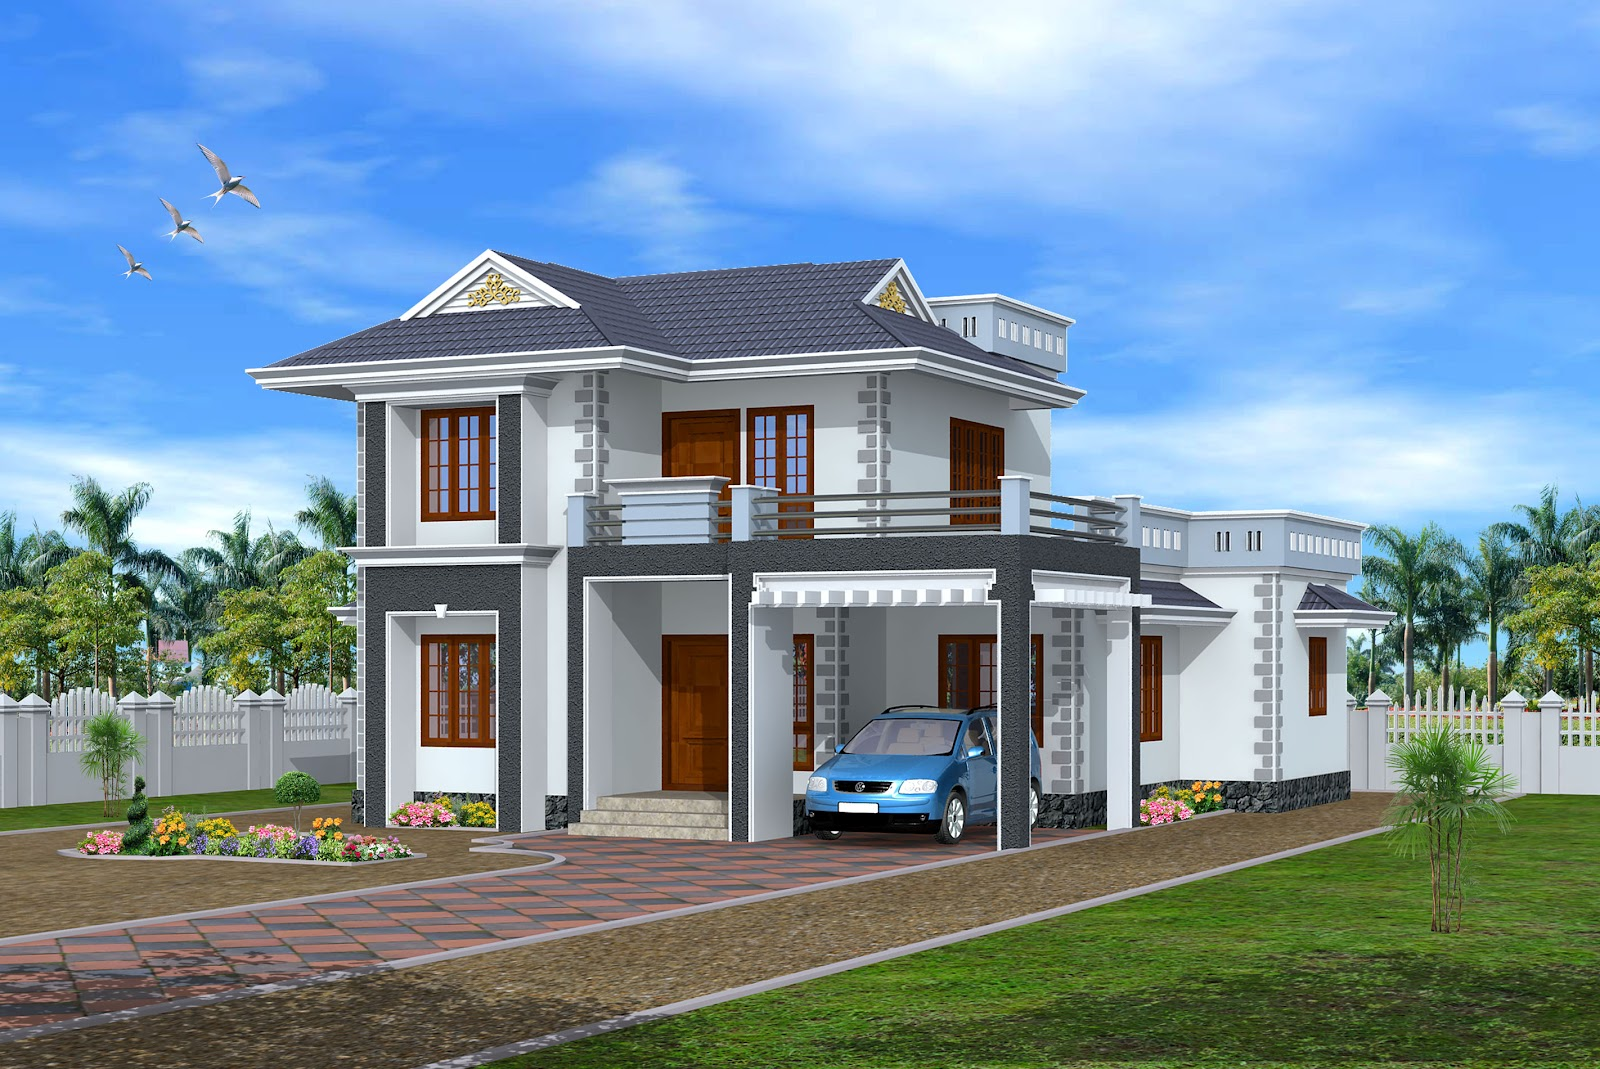 New home designs latest modern homes exterior designs views for House 4